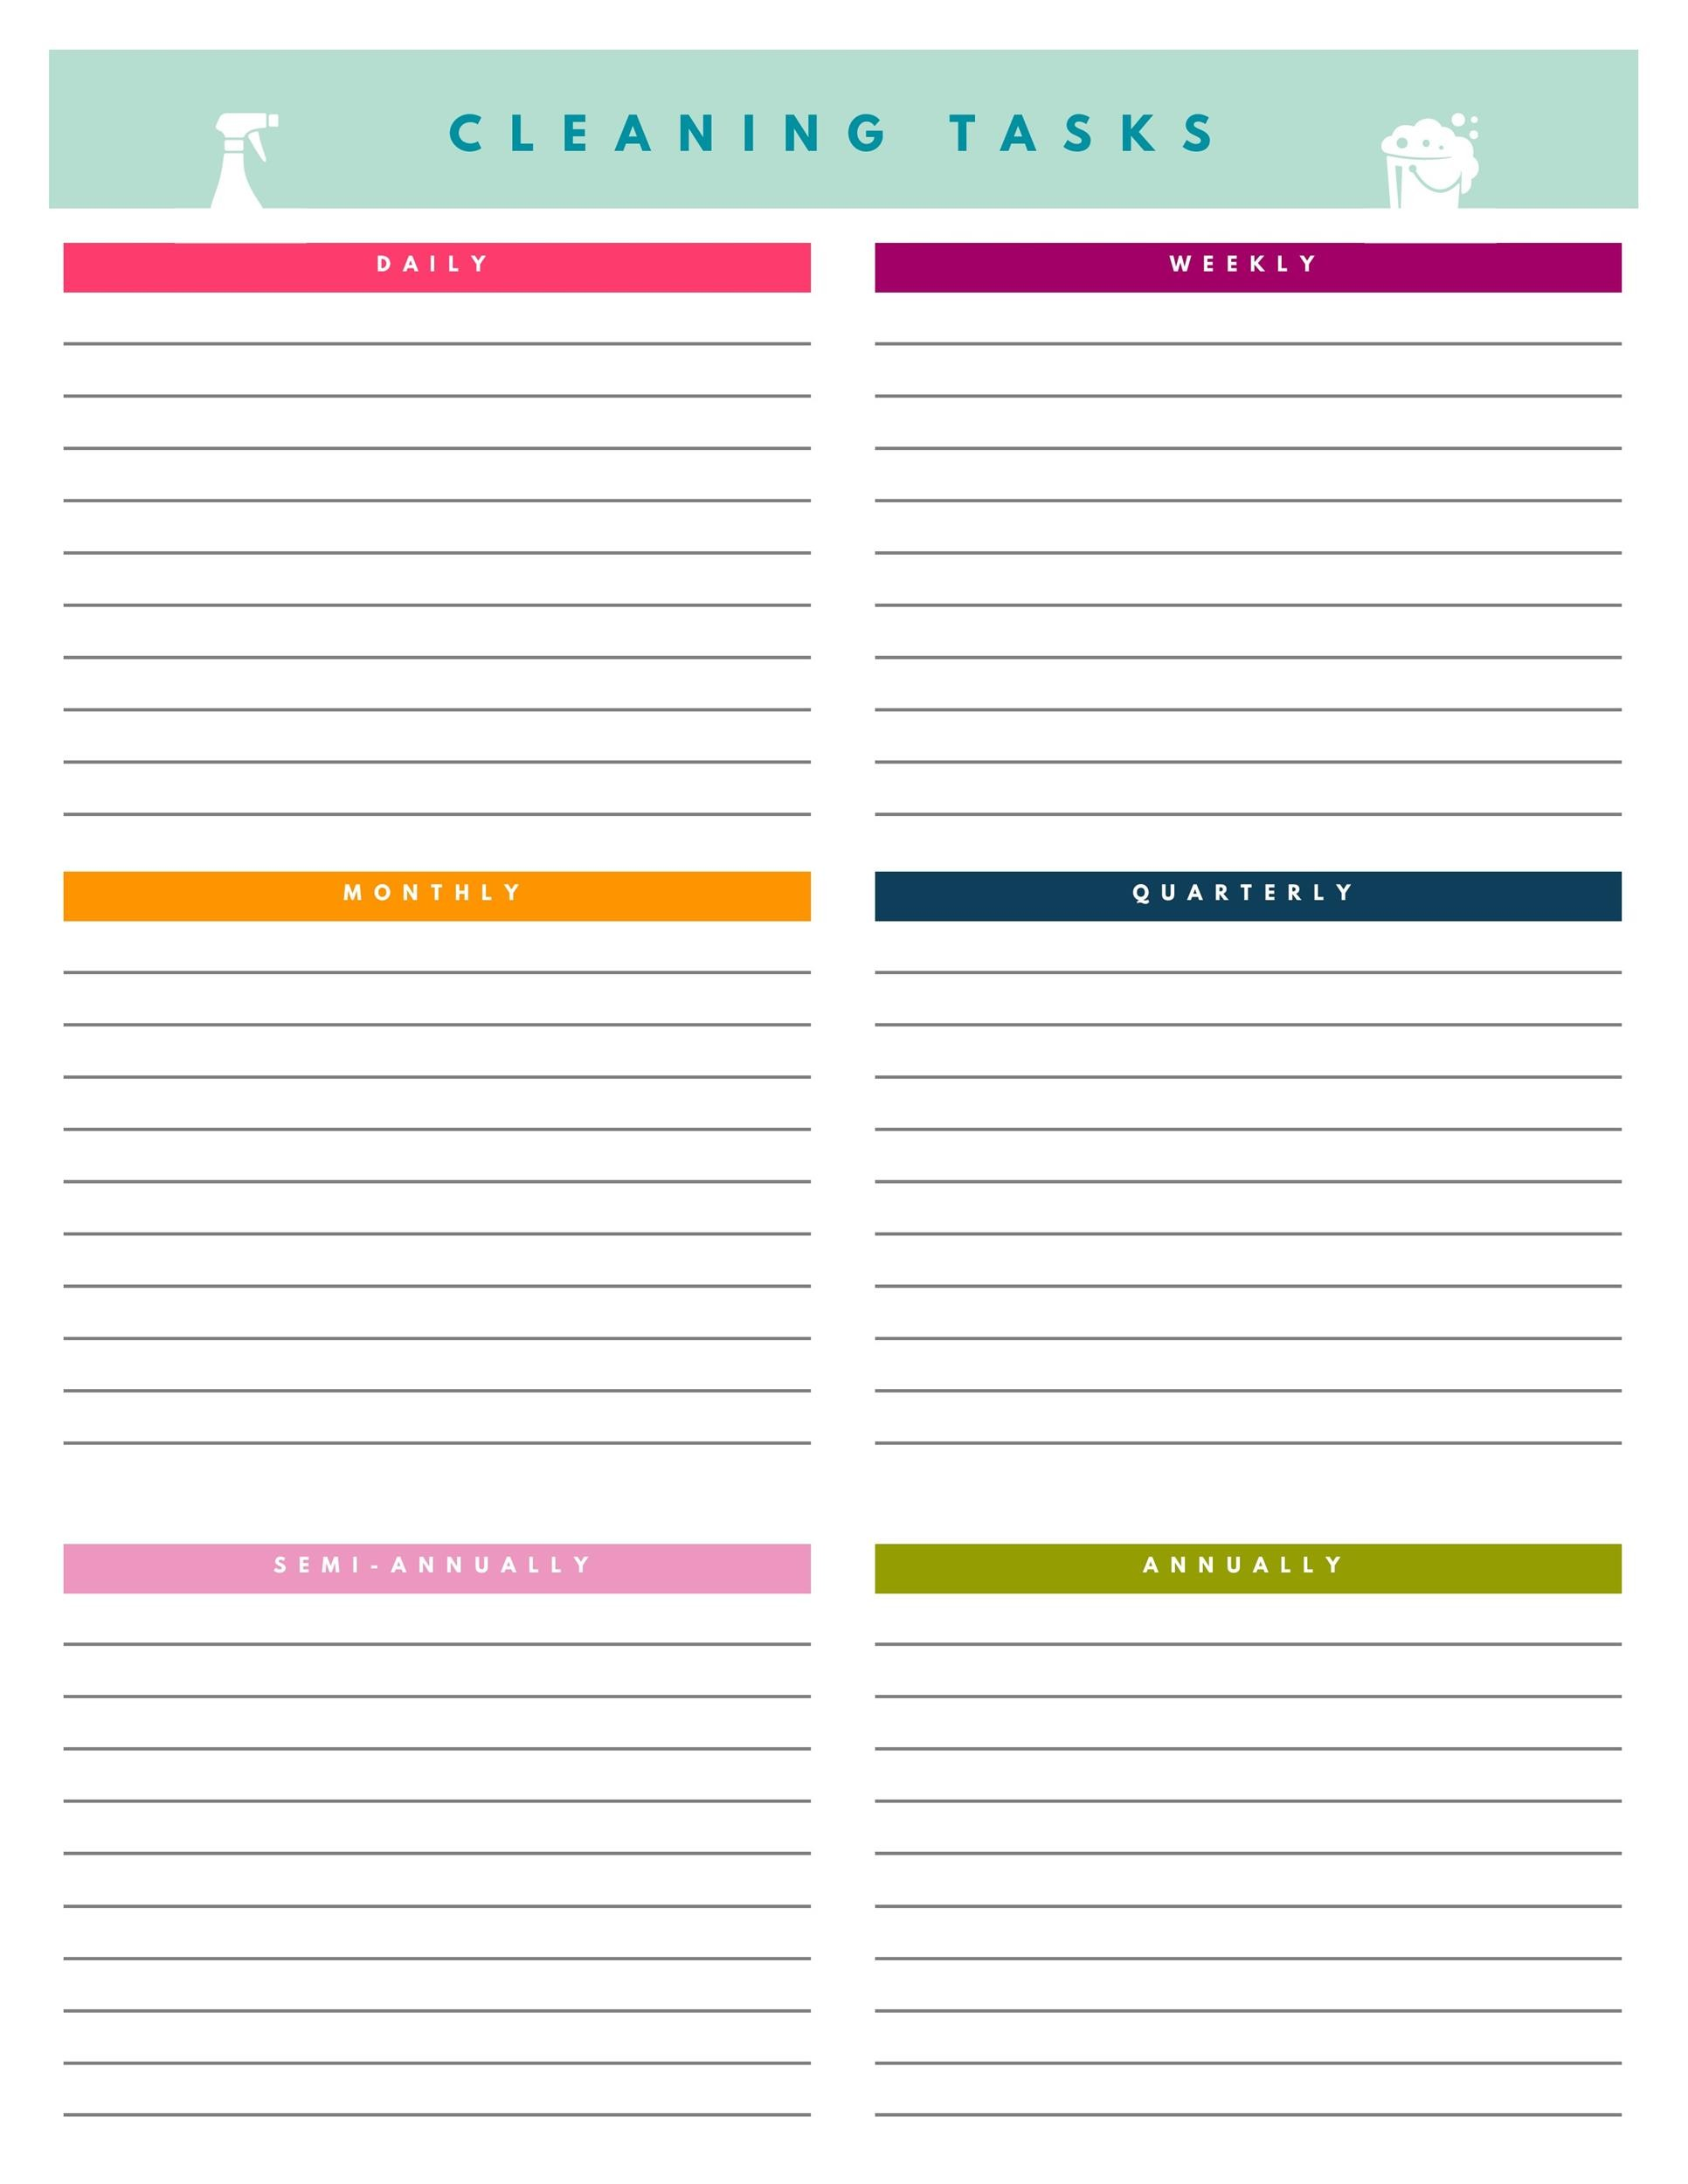 graphic regarding Free Printable Cleaning Schedule Template referred to as 40 Printable Place Cleansing Record Templates ᐅ Template Lab